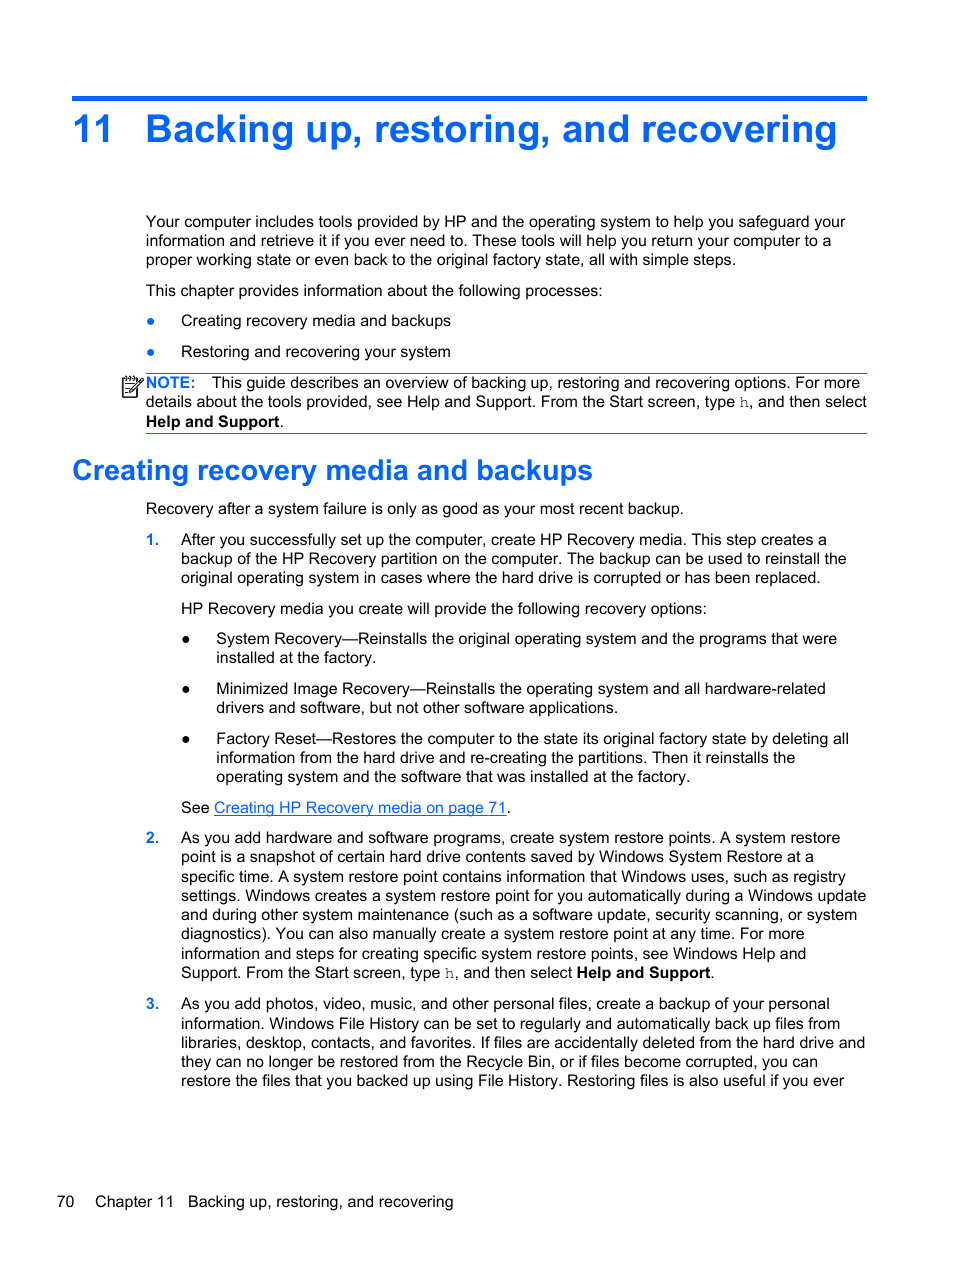 Backing up, restoring, and recovering, Creating recovery